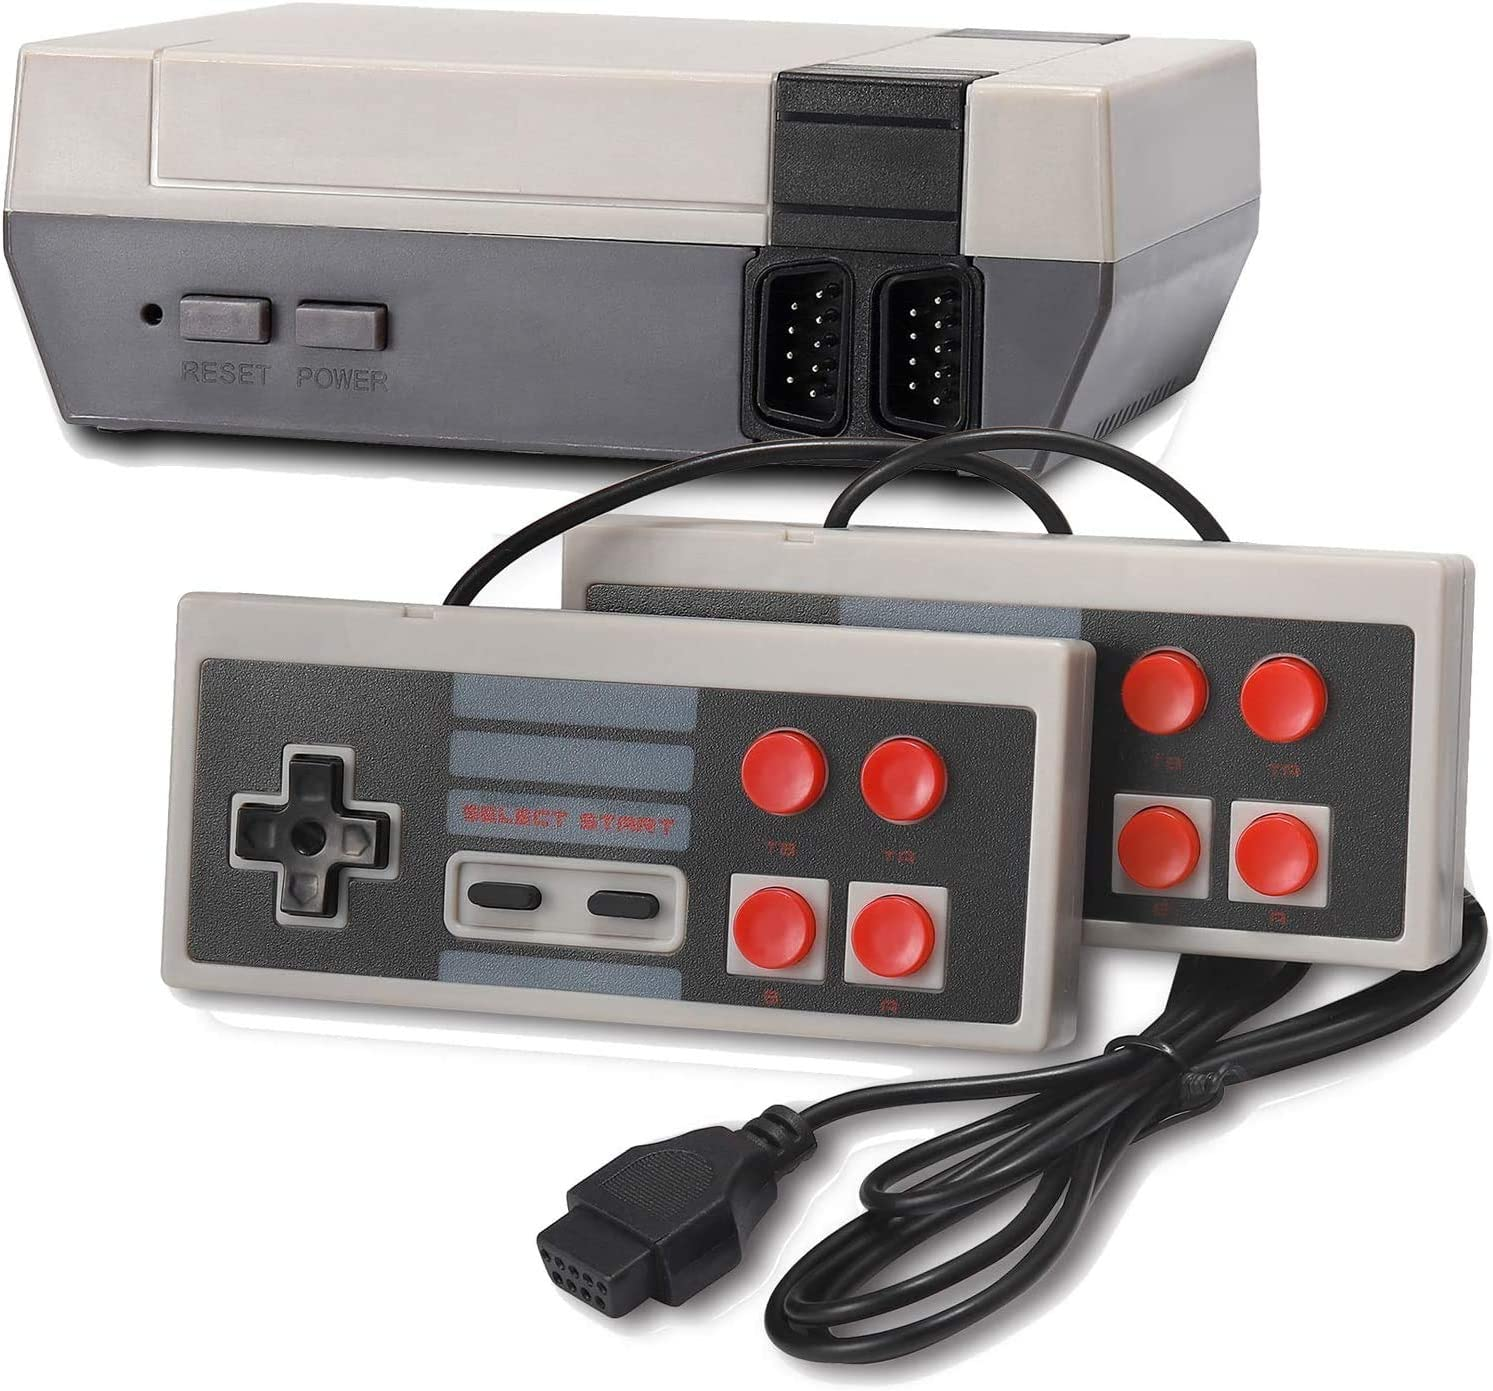 Burcica Retro Game Console, Classic Mini Video Games Consoles with 620 Games Built in 2 Controllers for NES Style AV Output (Grey)